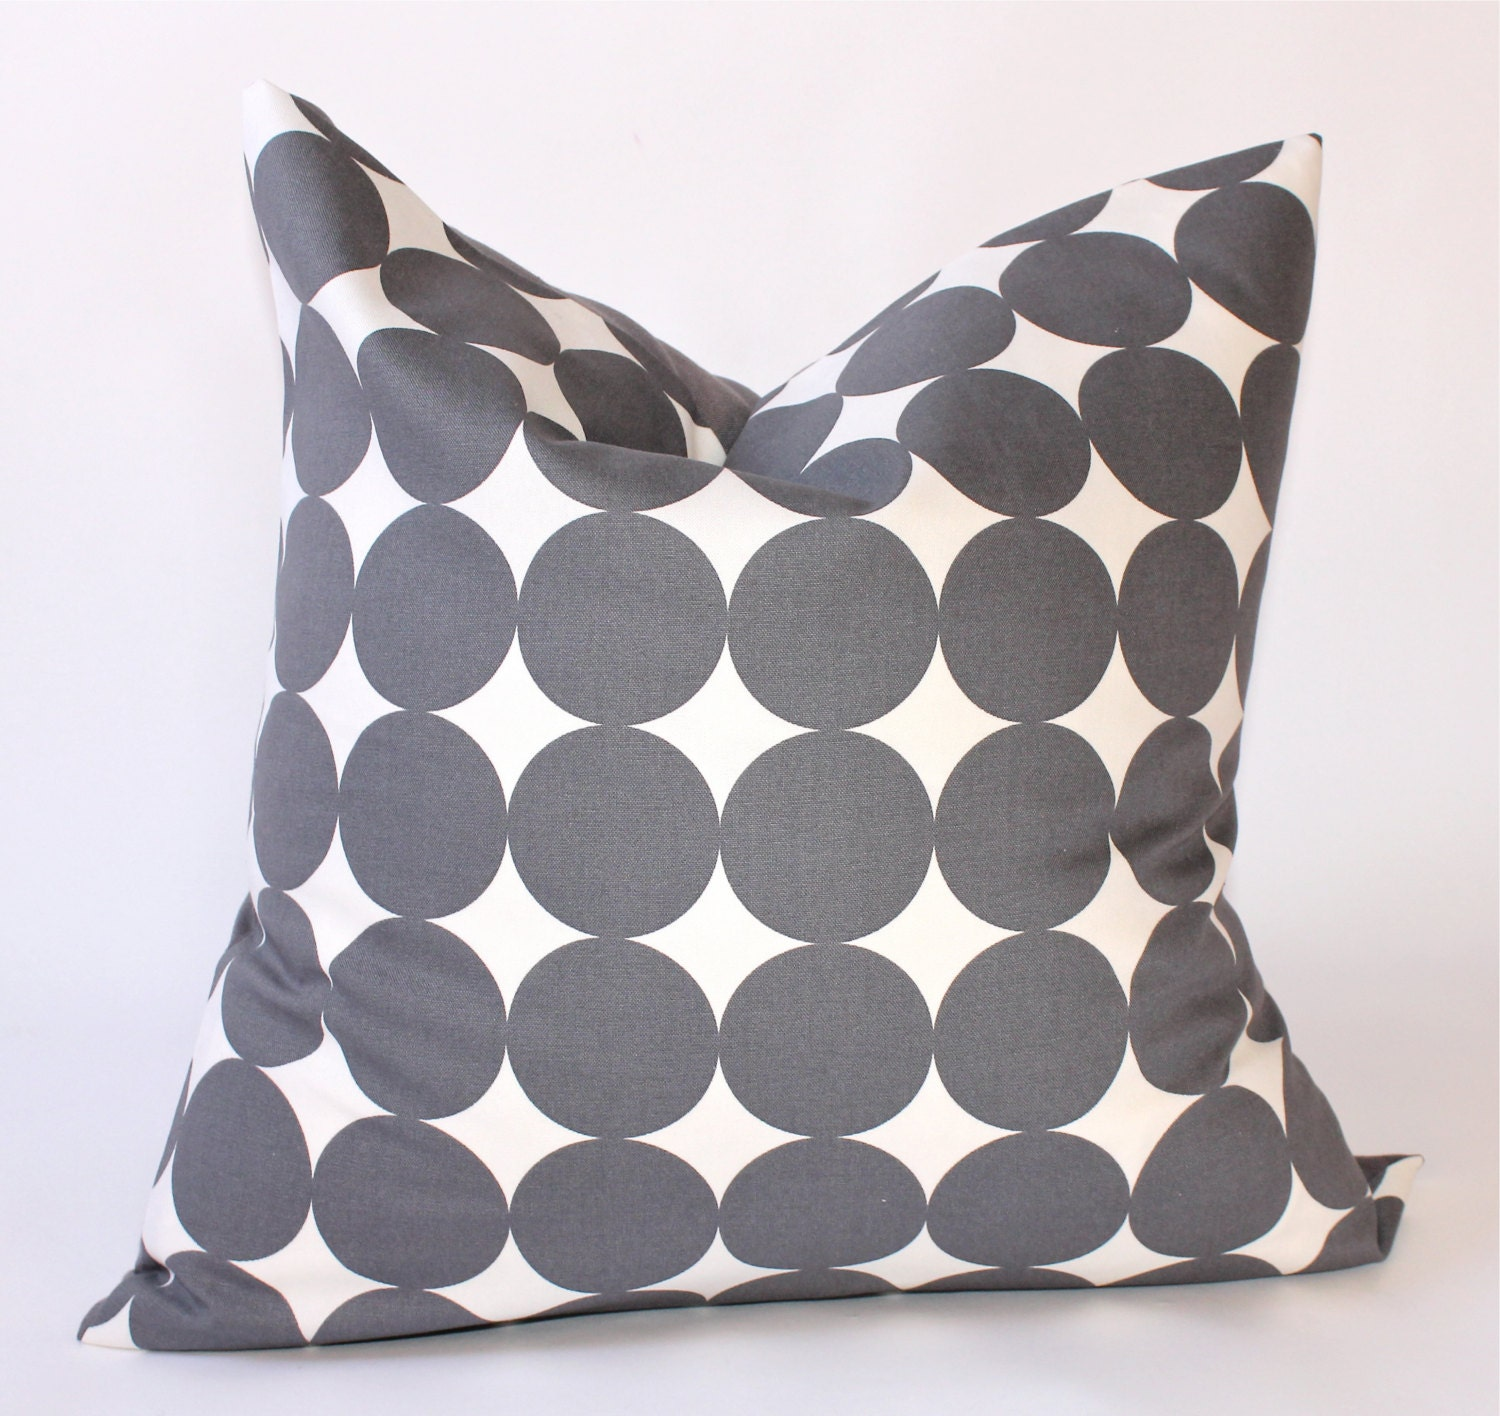 Throw Pillow Covers 18 Inches : 18 x 18 inch Decorative Pillow Cover by ThePillowPalette on Etsy